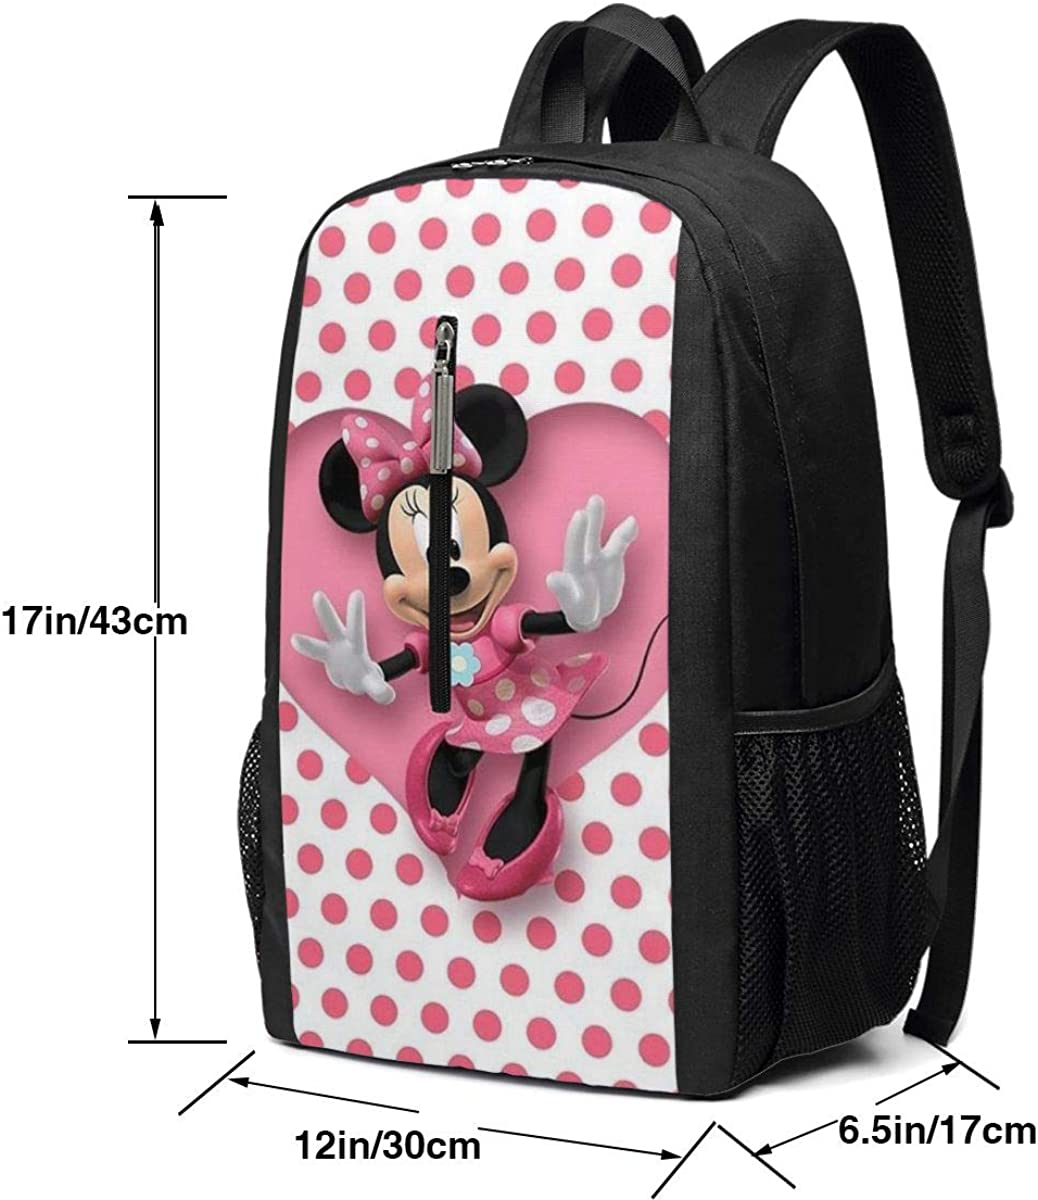 Cute Minnie Mouse Large Laptop Bag Travel Hiking Daypack For Men Women School Work Backpack 17 Inch